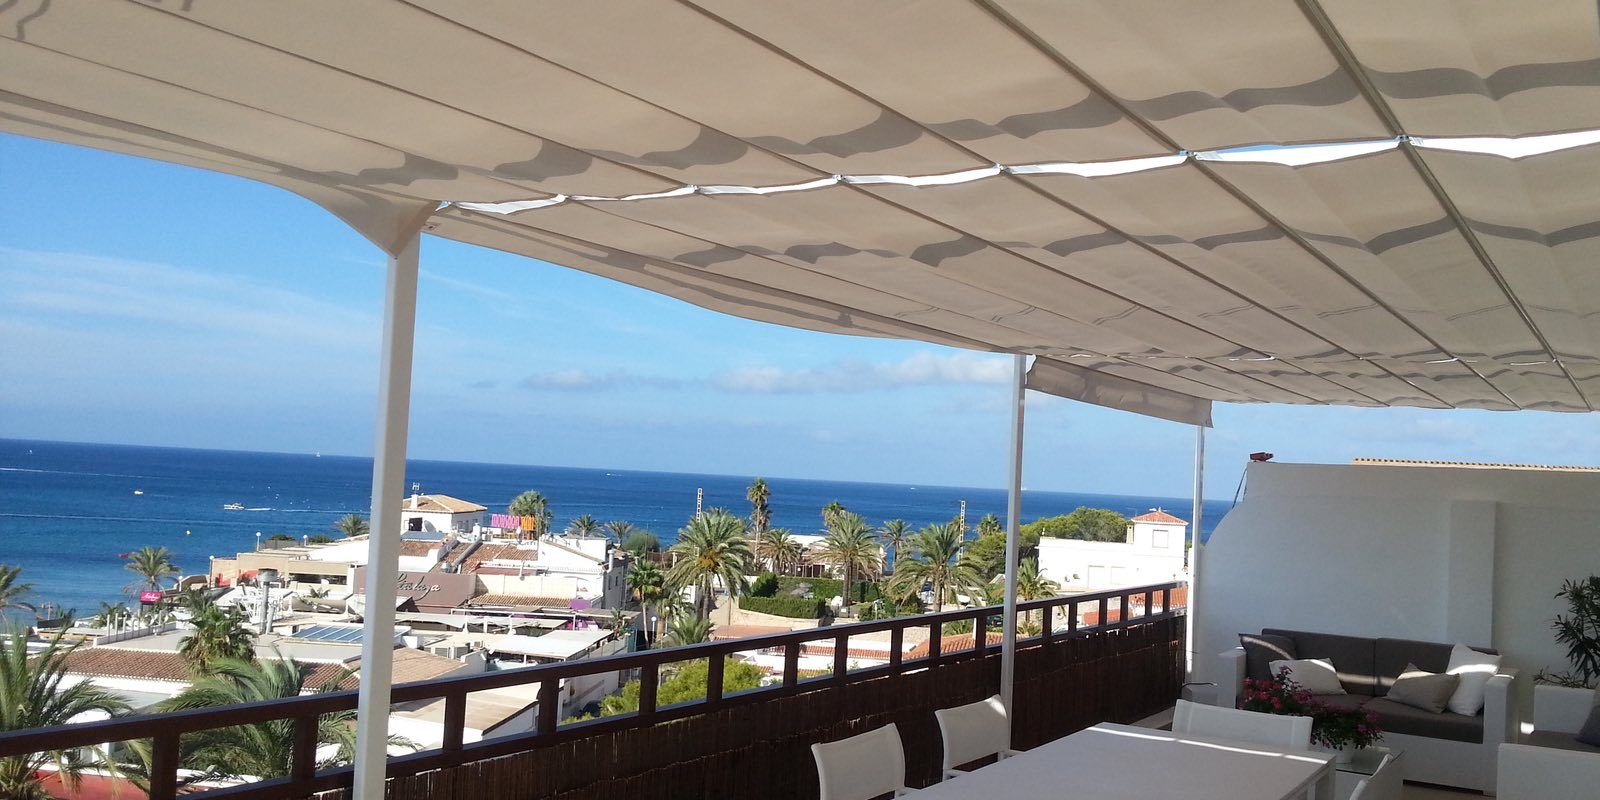 Terrace Shade Javea